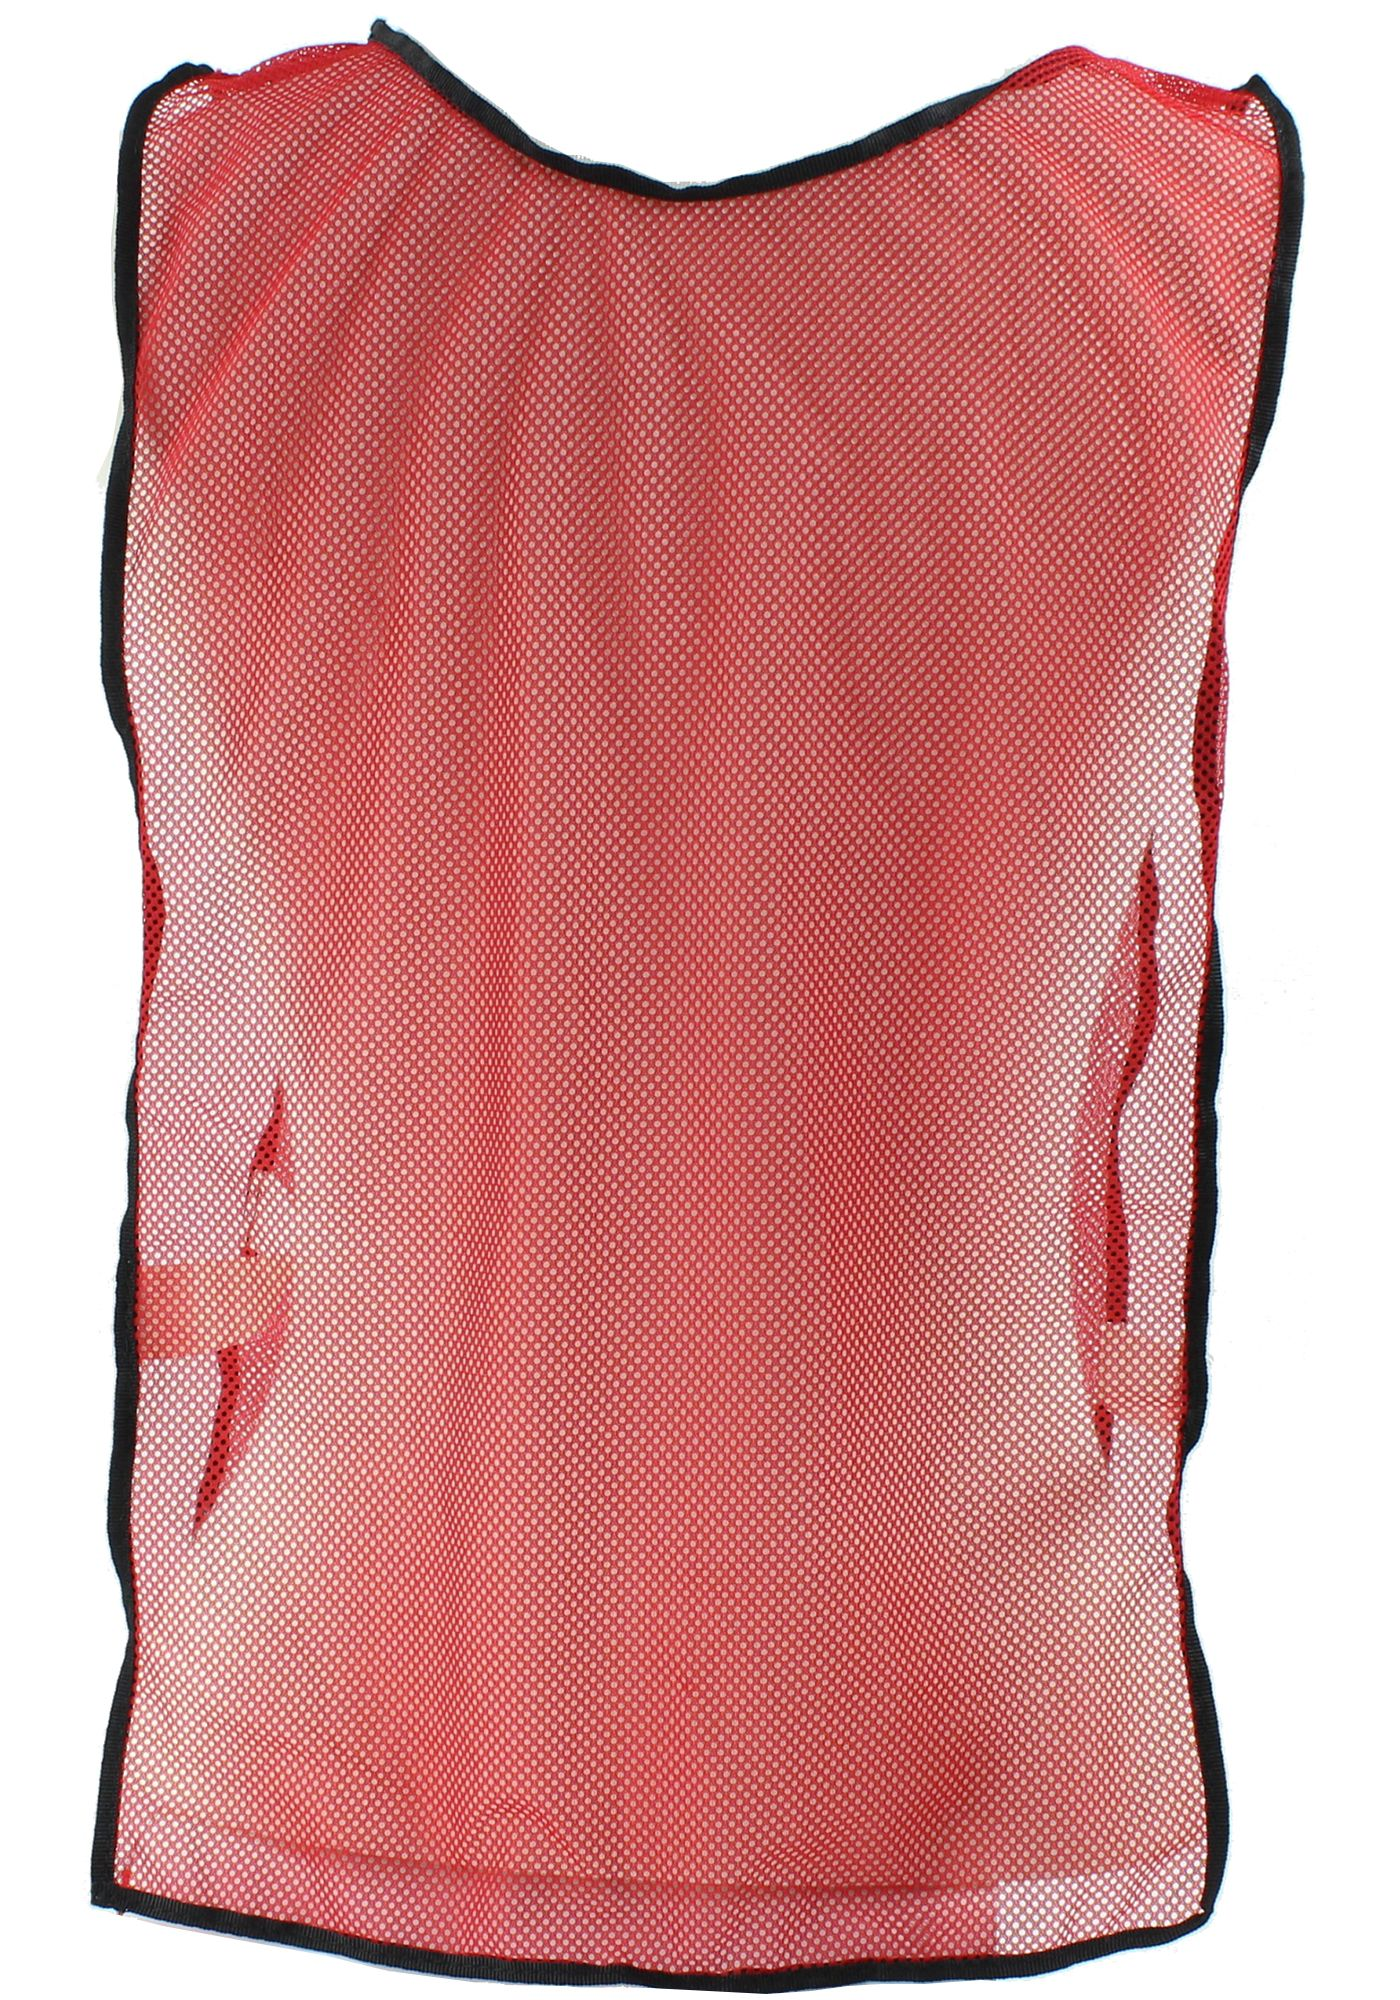 PRIMED Red Pinnies – 6 Pack